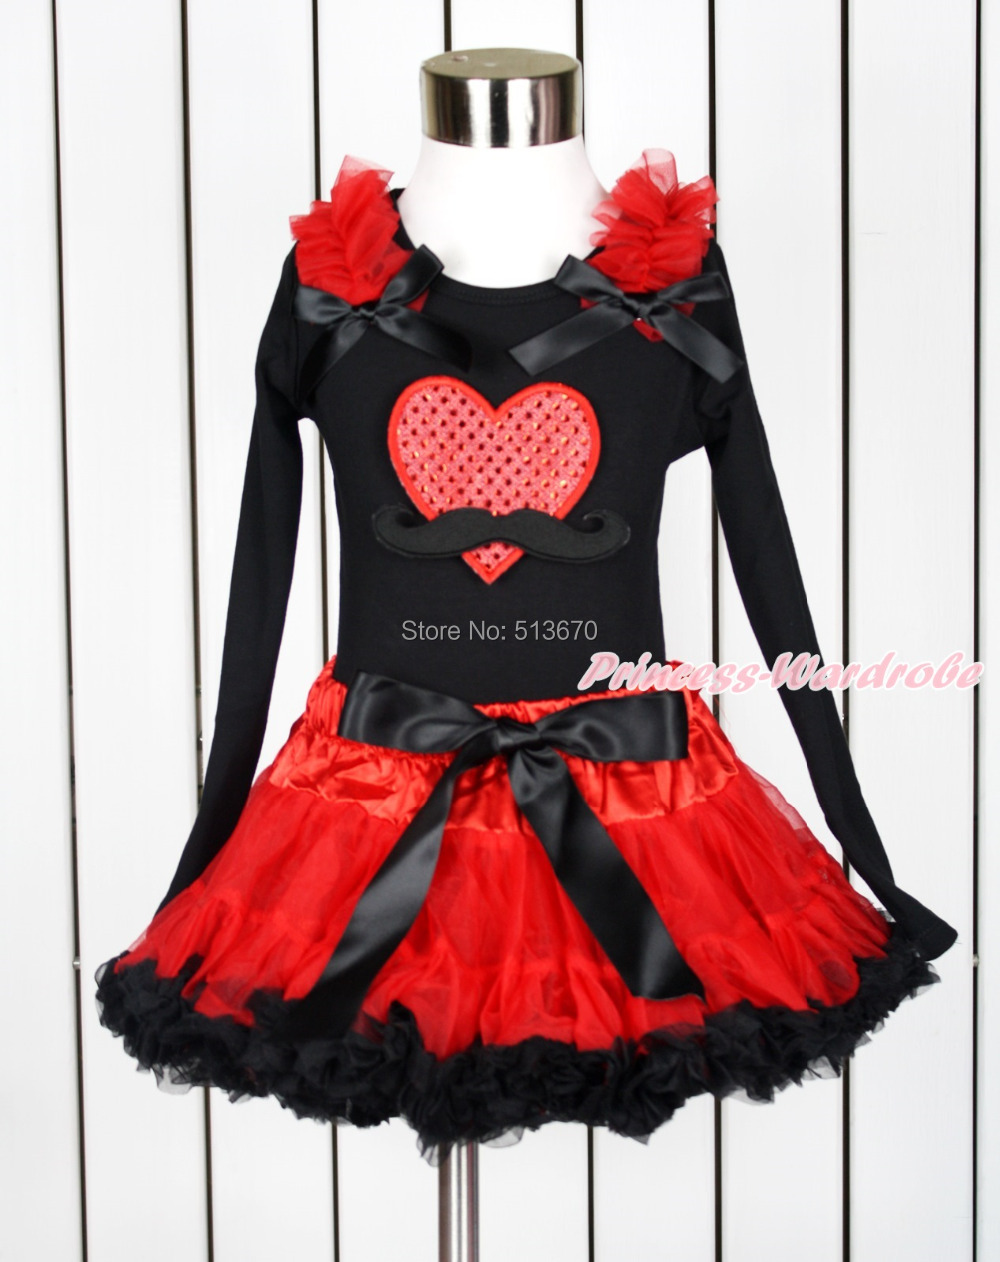 Valentine Mustache Sparkle Red Heart Black Top Hot Red Black Pettiskirt Set 1-8Y MAPSA0113 xmas red orange yellow black roses brown top baby girl pettiskirt outfit 1 8y mapsa0038